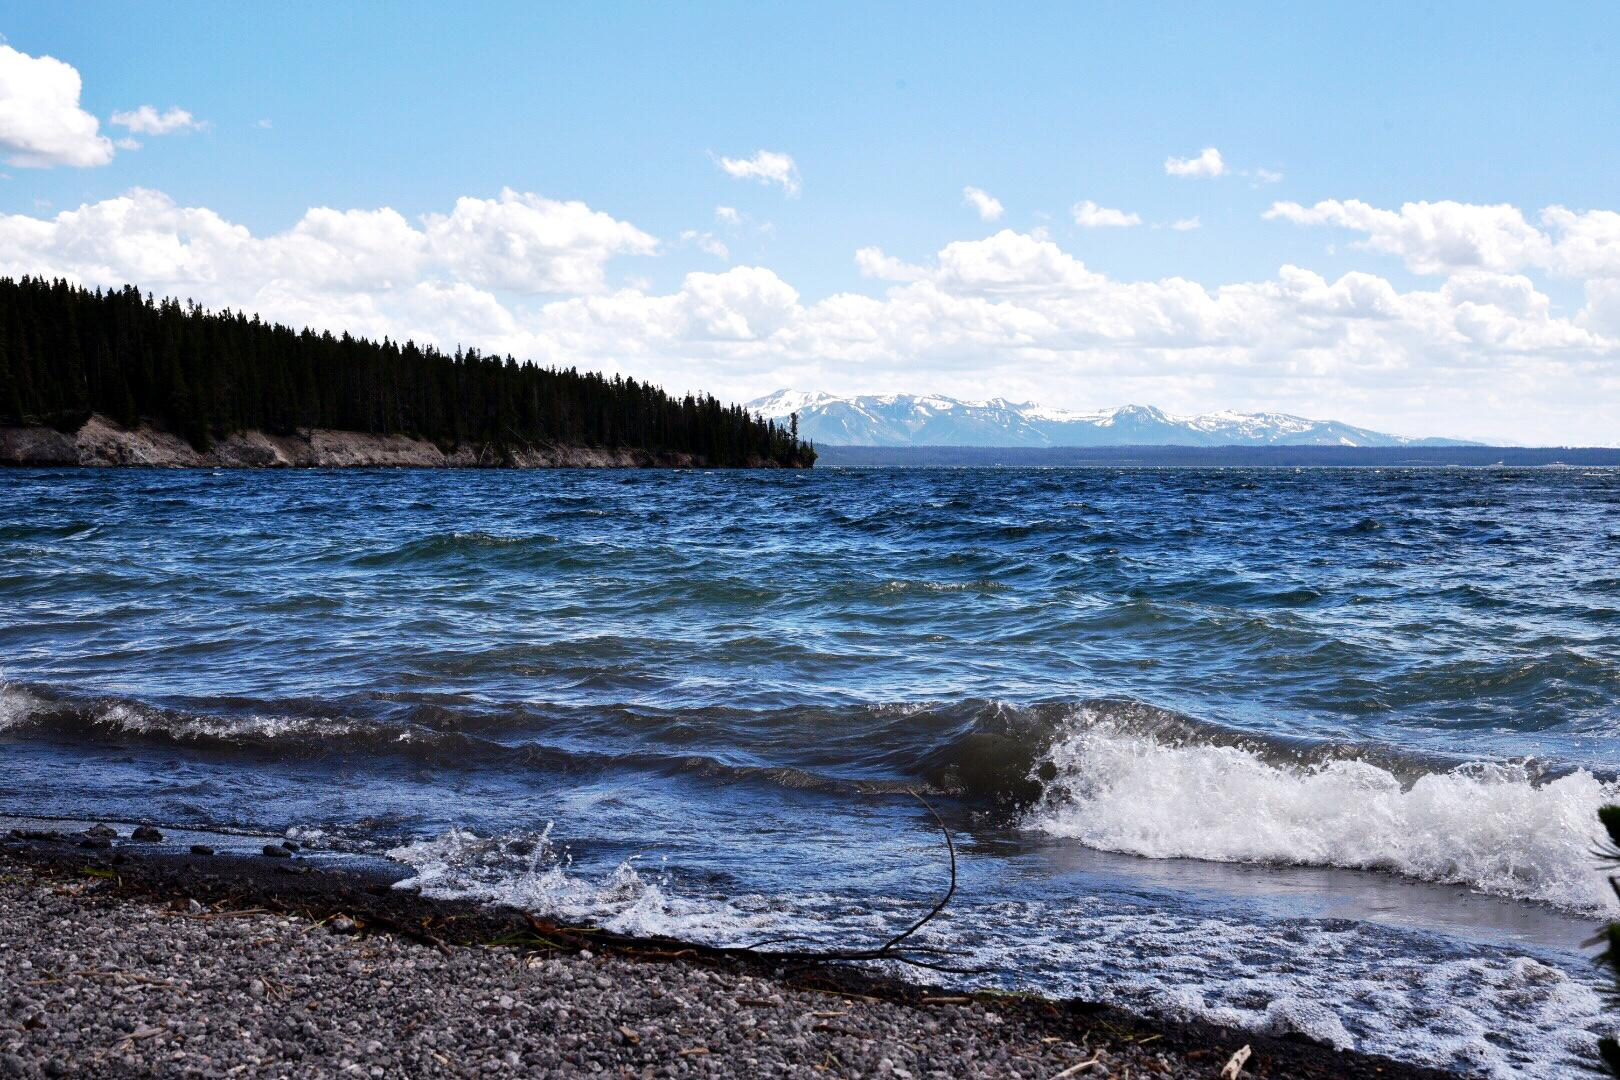 Yellowstone Lake is up to 400 feet deep and has over 100 miles of shoreline. At an elevation of 7,733 feet above sea level, the lake is the largest high altitude lake in North America.